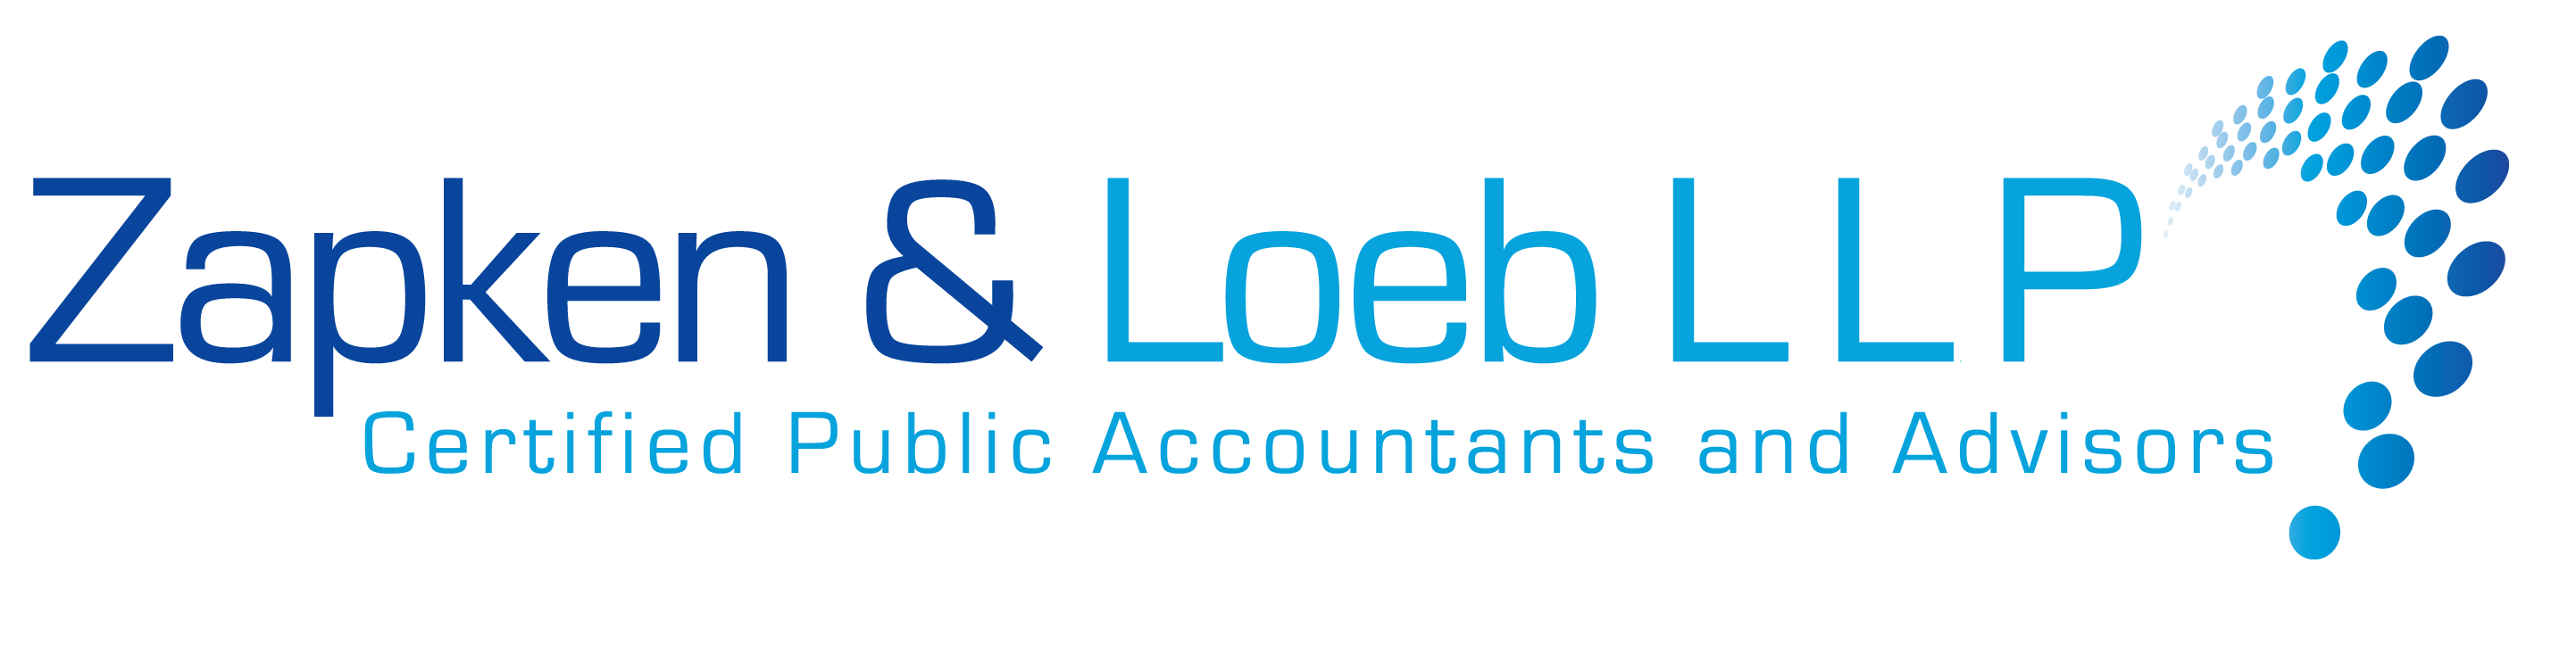 Woodbury, NY Accounting Firm | Bank Financing Page | Zapken & Loeb L.L.P.